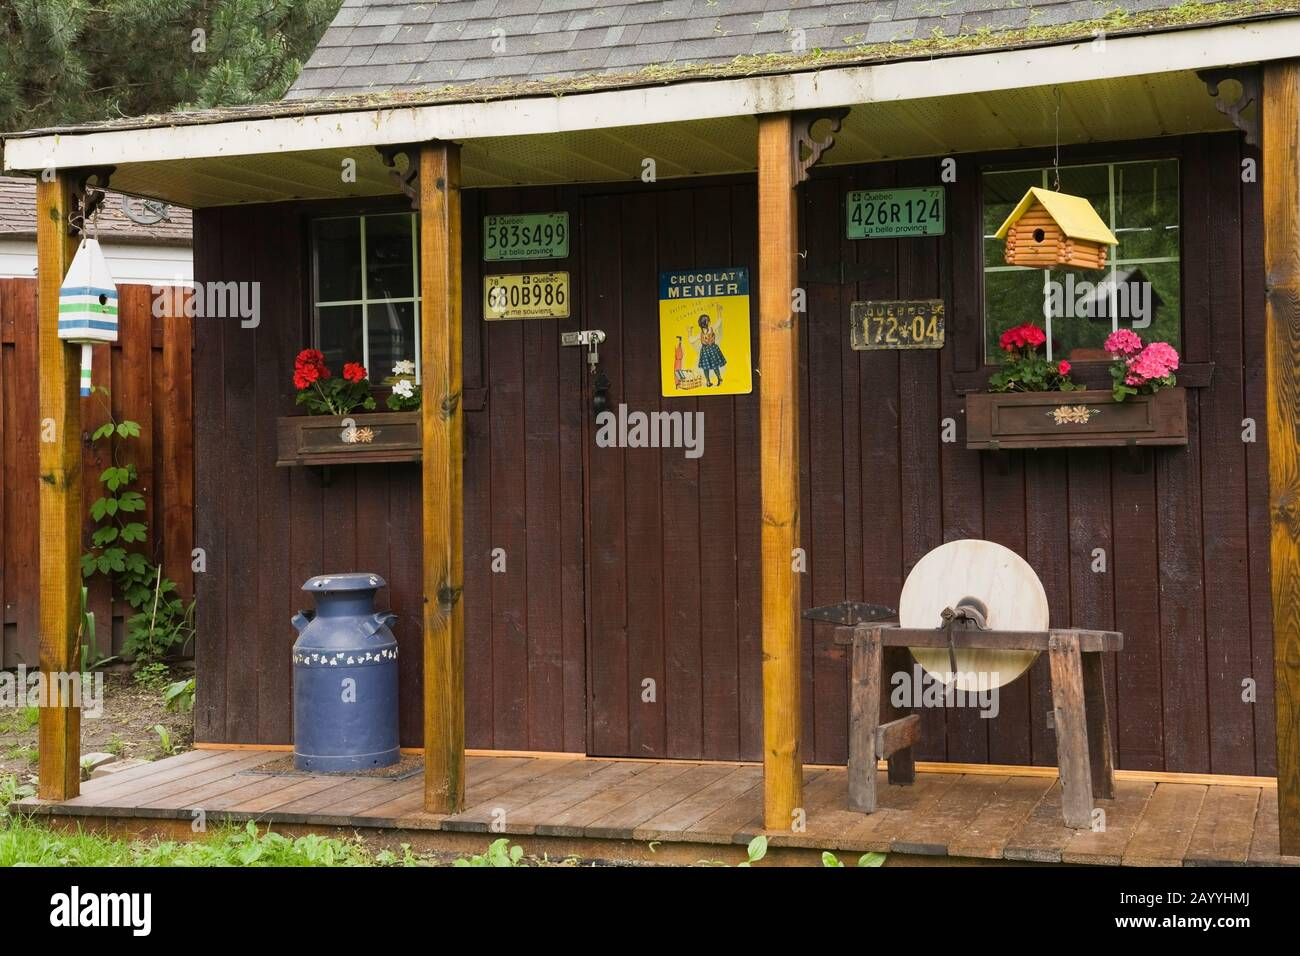 Old Wooden Tool And Storage Shed Decorated With Birdhouses And Red And Pink Geraniums In Flower Boxes In Residential Backyard Stock Photo Alamy